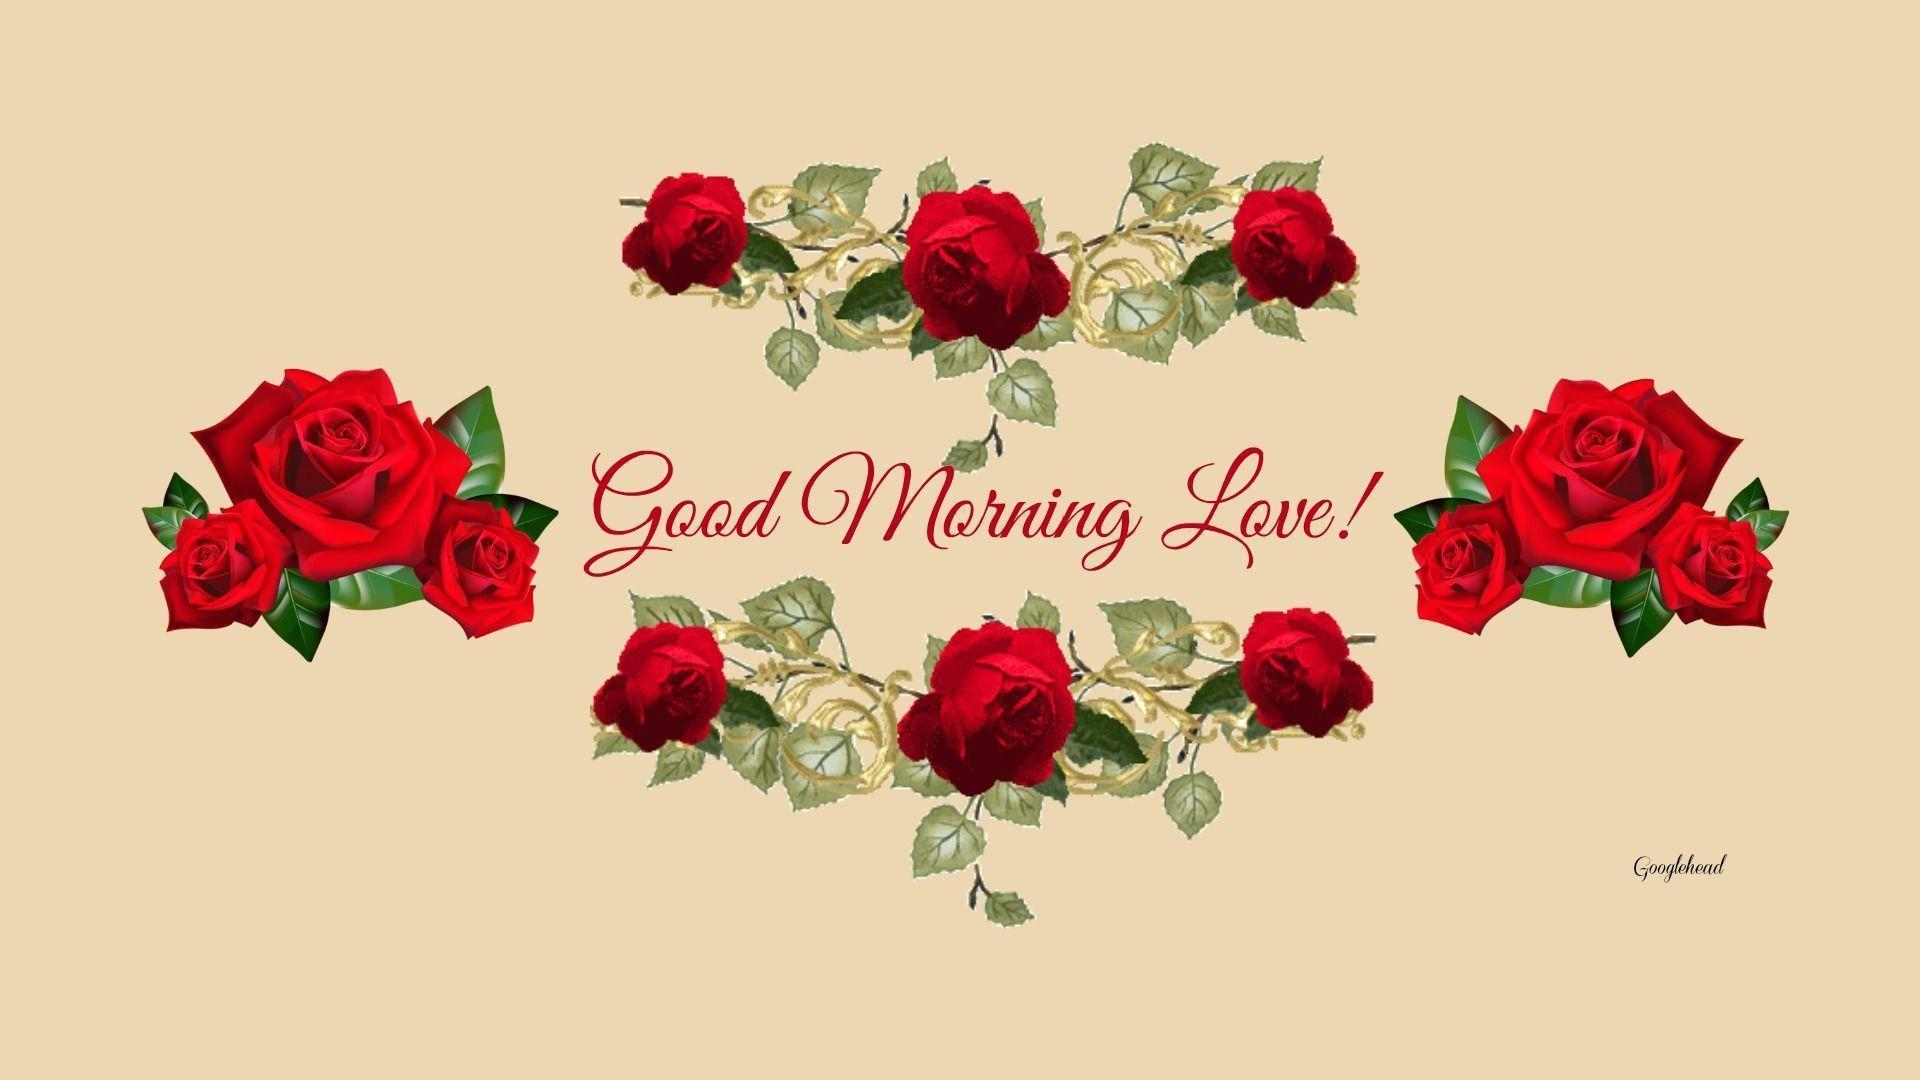 Wallpaper Good Morning With Love : Wallpapers Good Morning Love - Wallpaper cave